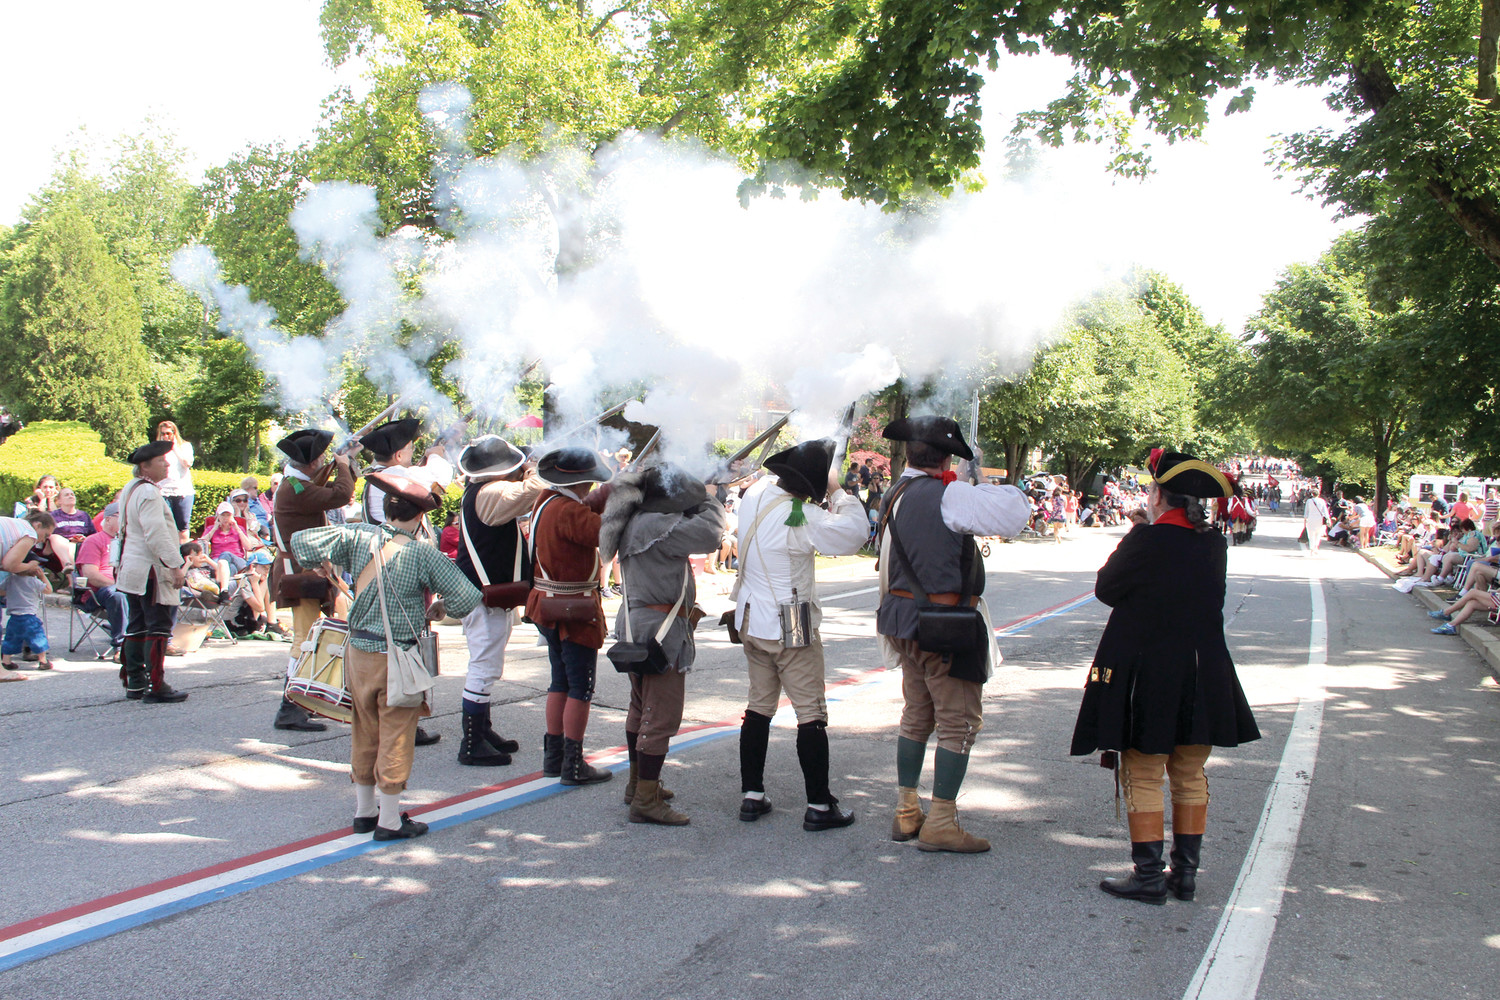 AND WHEN THE SMOKE CLEARED...the Gaspee Days parade carried on.